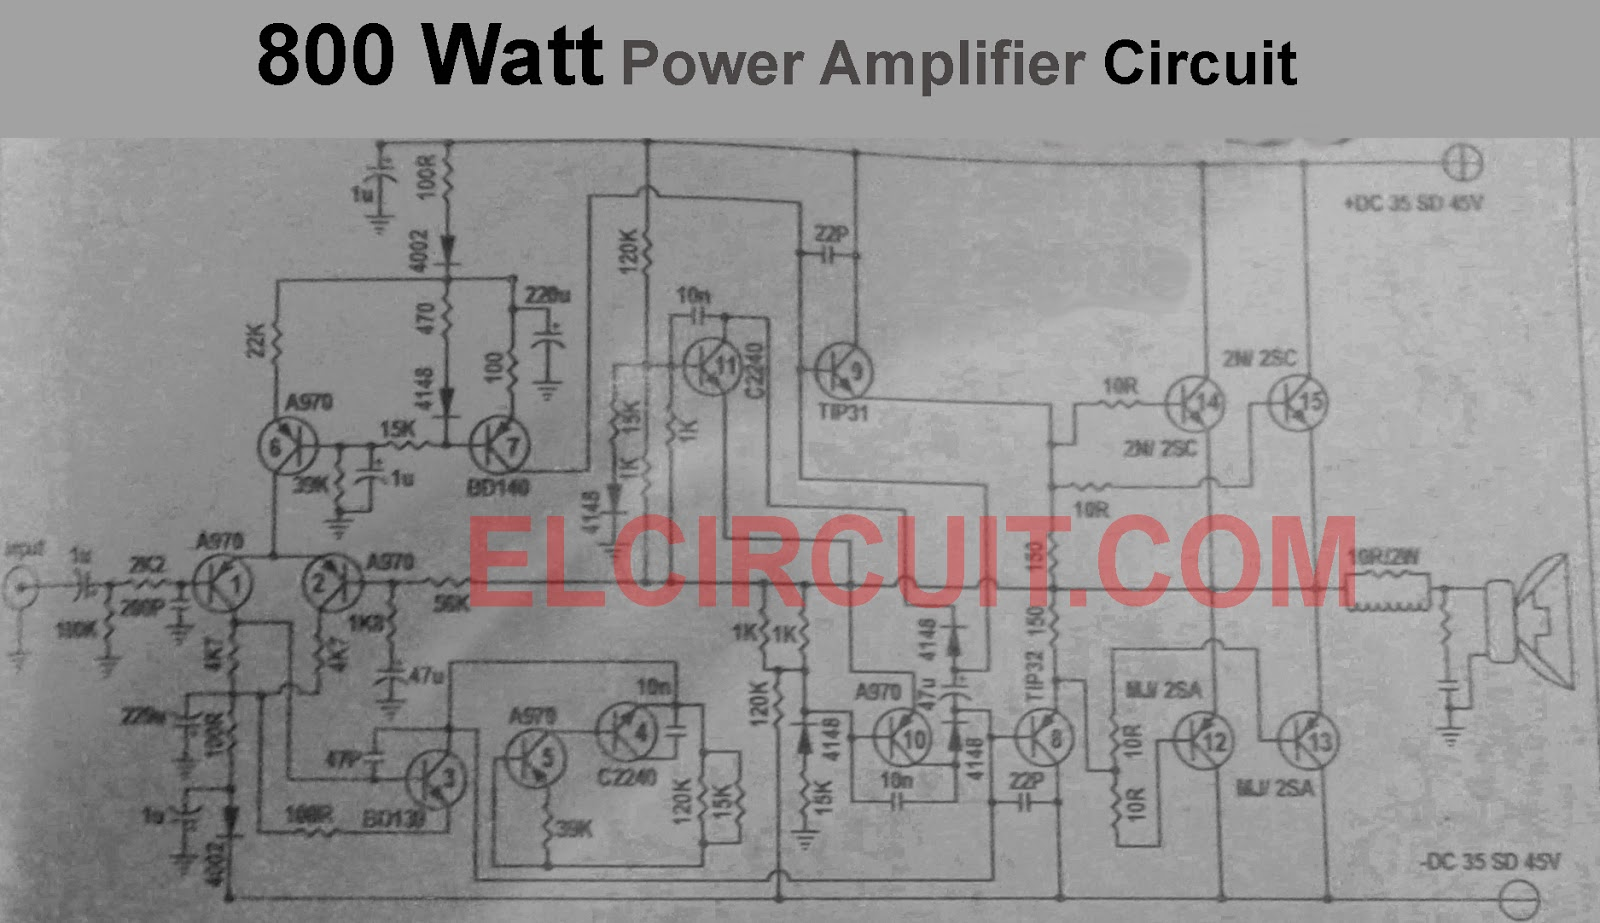 2000w Power Amplifier Circuit Diagram Electric Furnace 400w And 800w Electronic